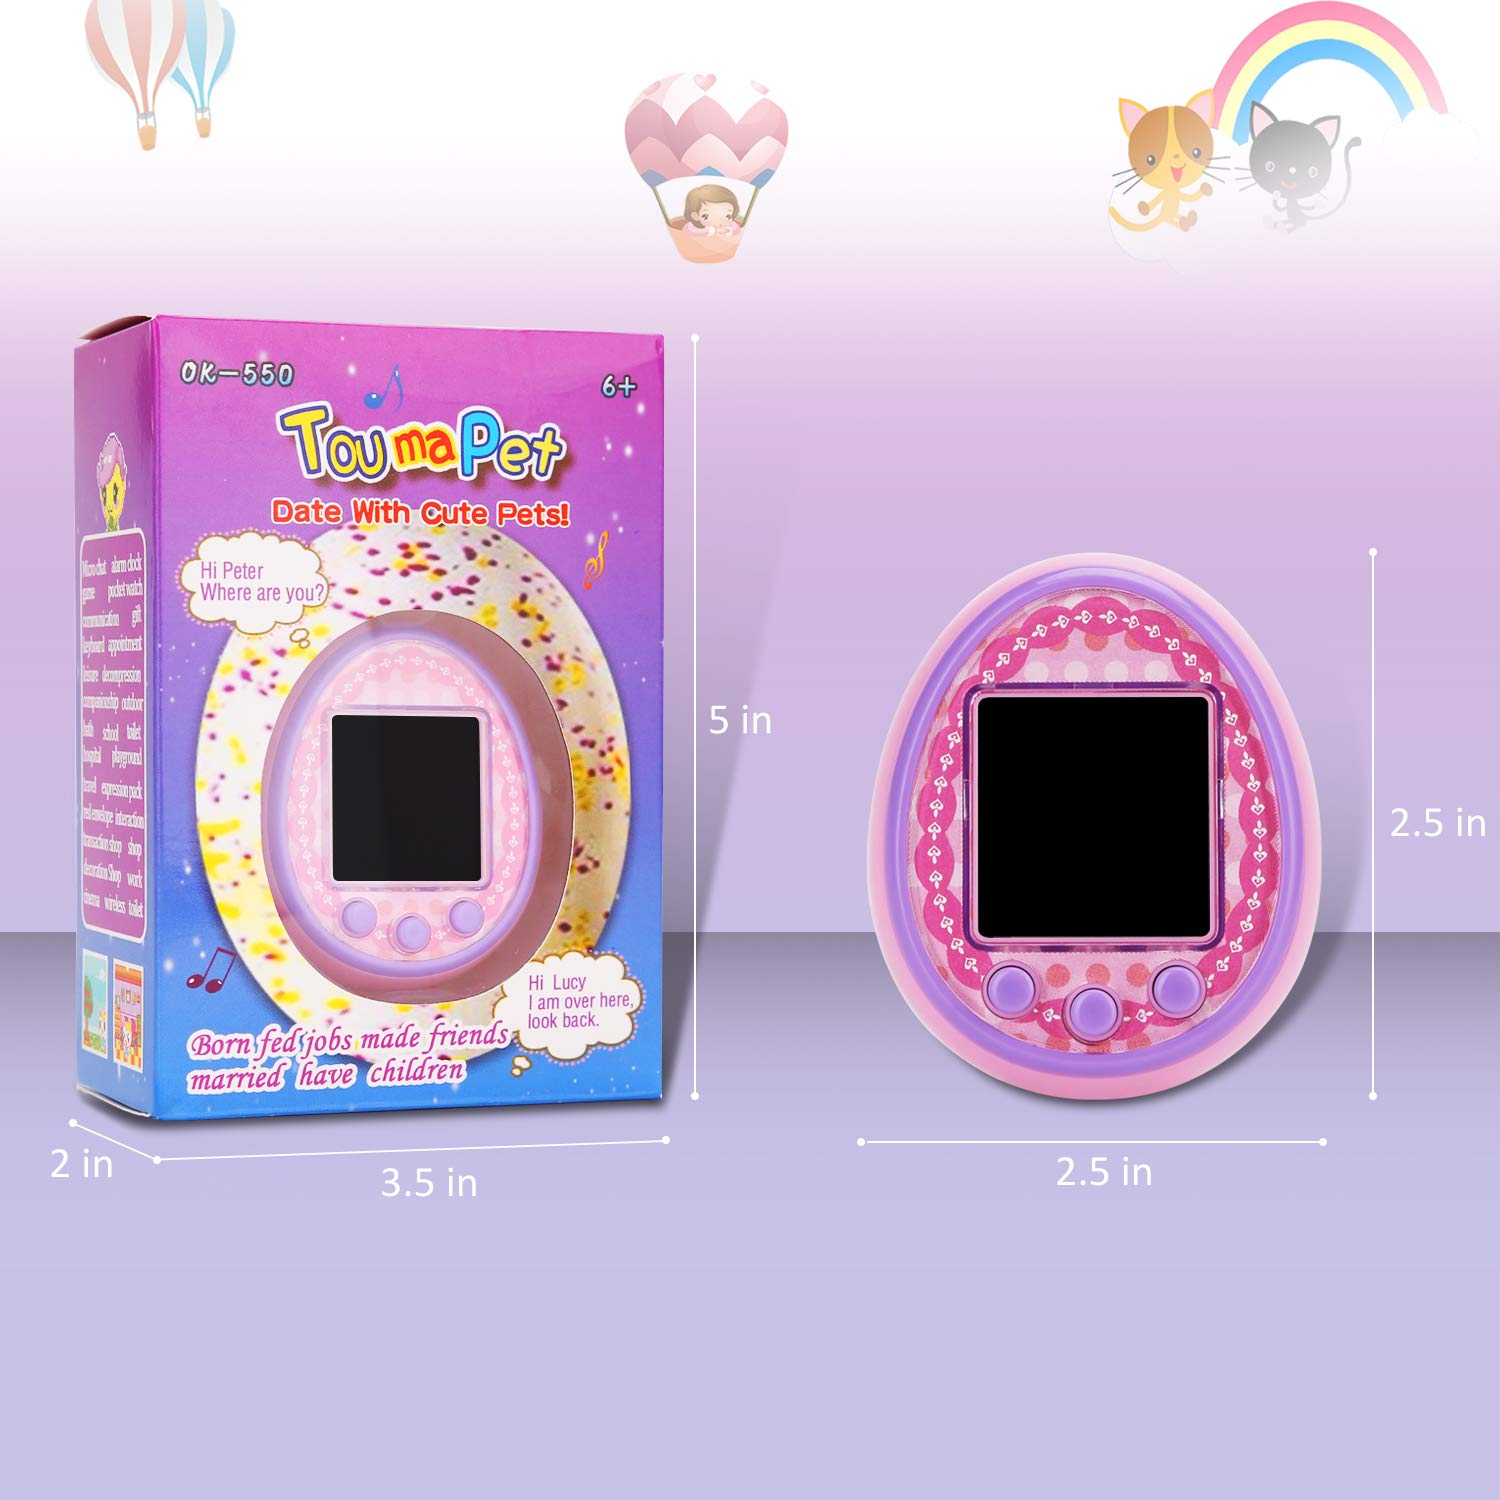 Virtual Digital Pets Toys Electronic Pets Game Machine HD Color Screen for Over 6 Years Old Child Toy 2019 New Version as a Best Birthday Gift for Boys Girls by Touma pets (Image #8)